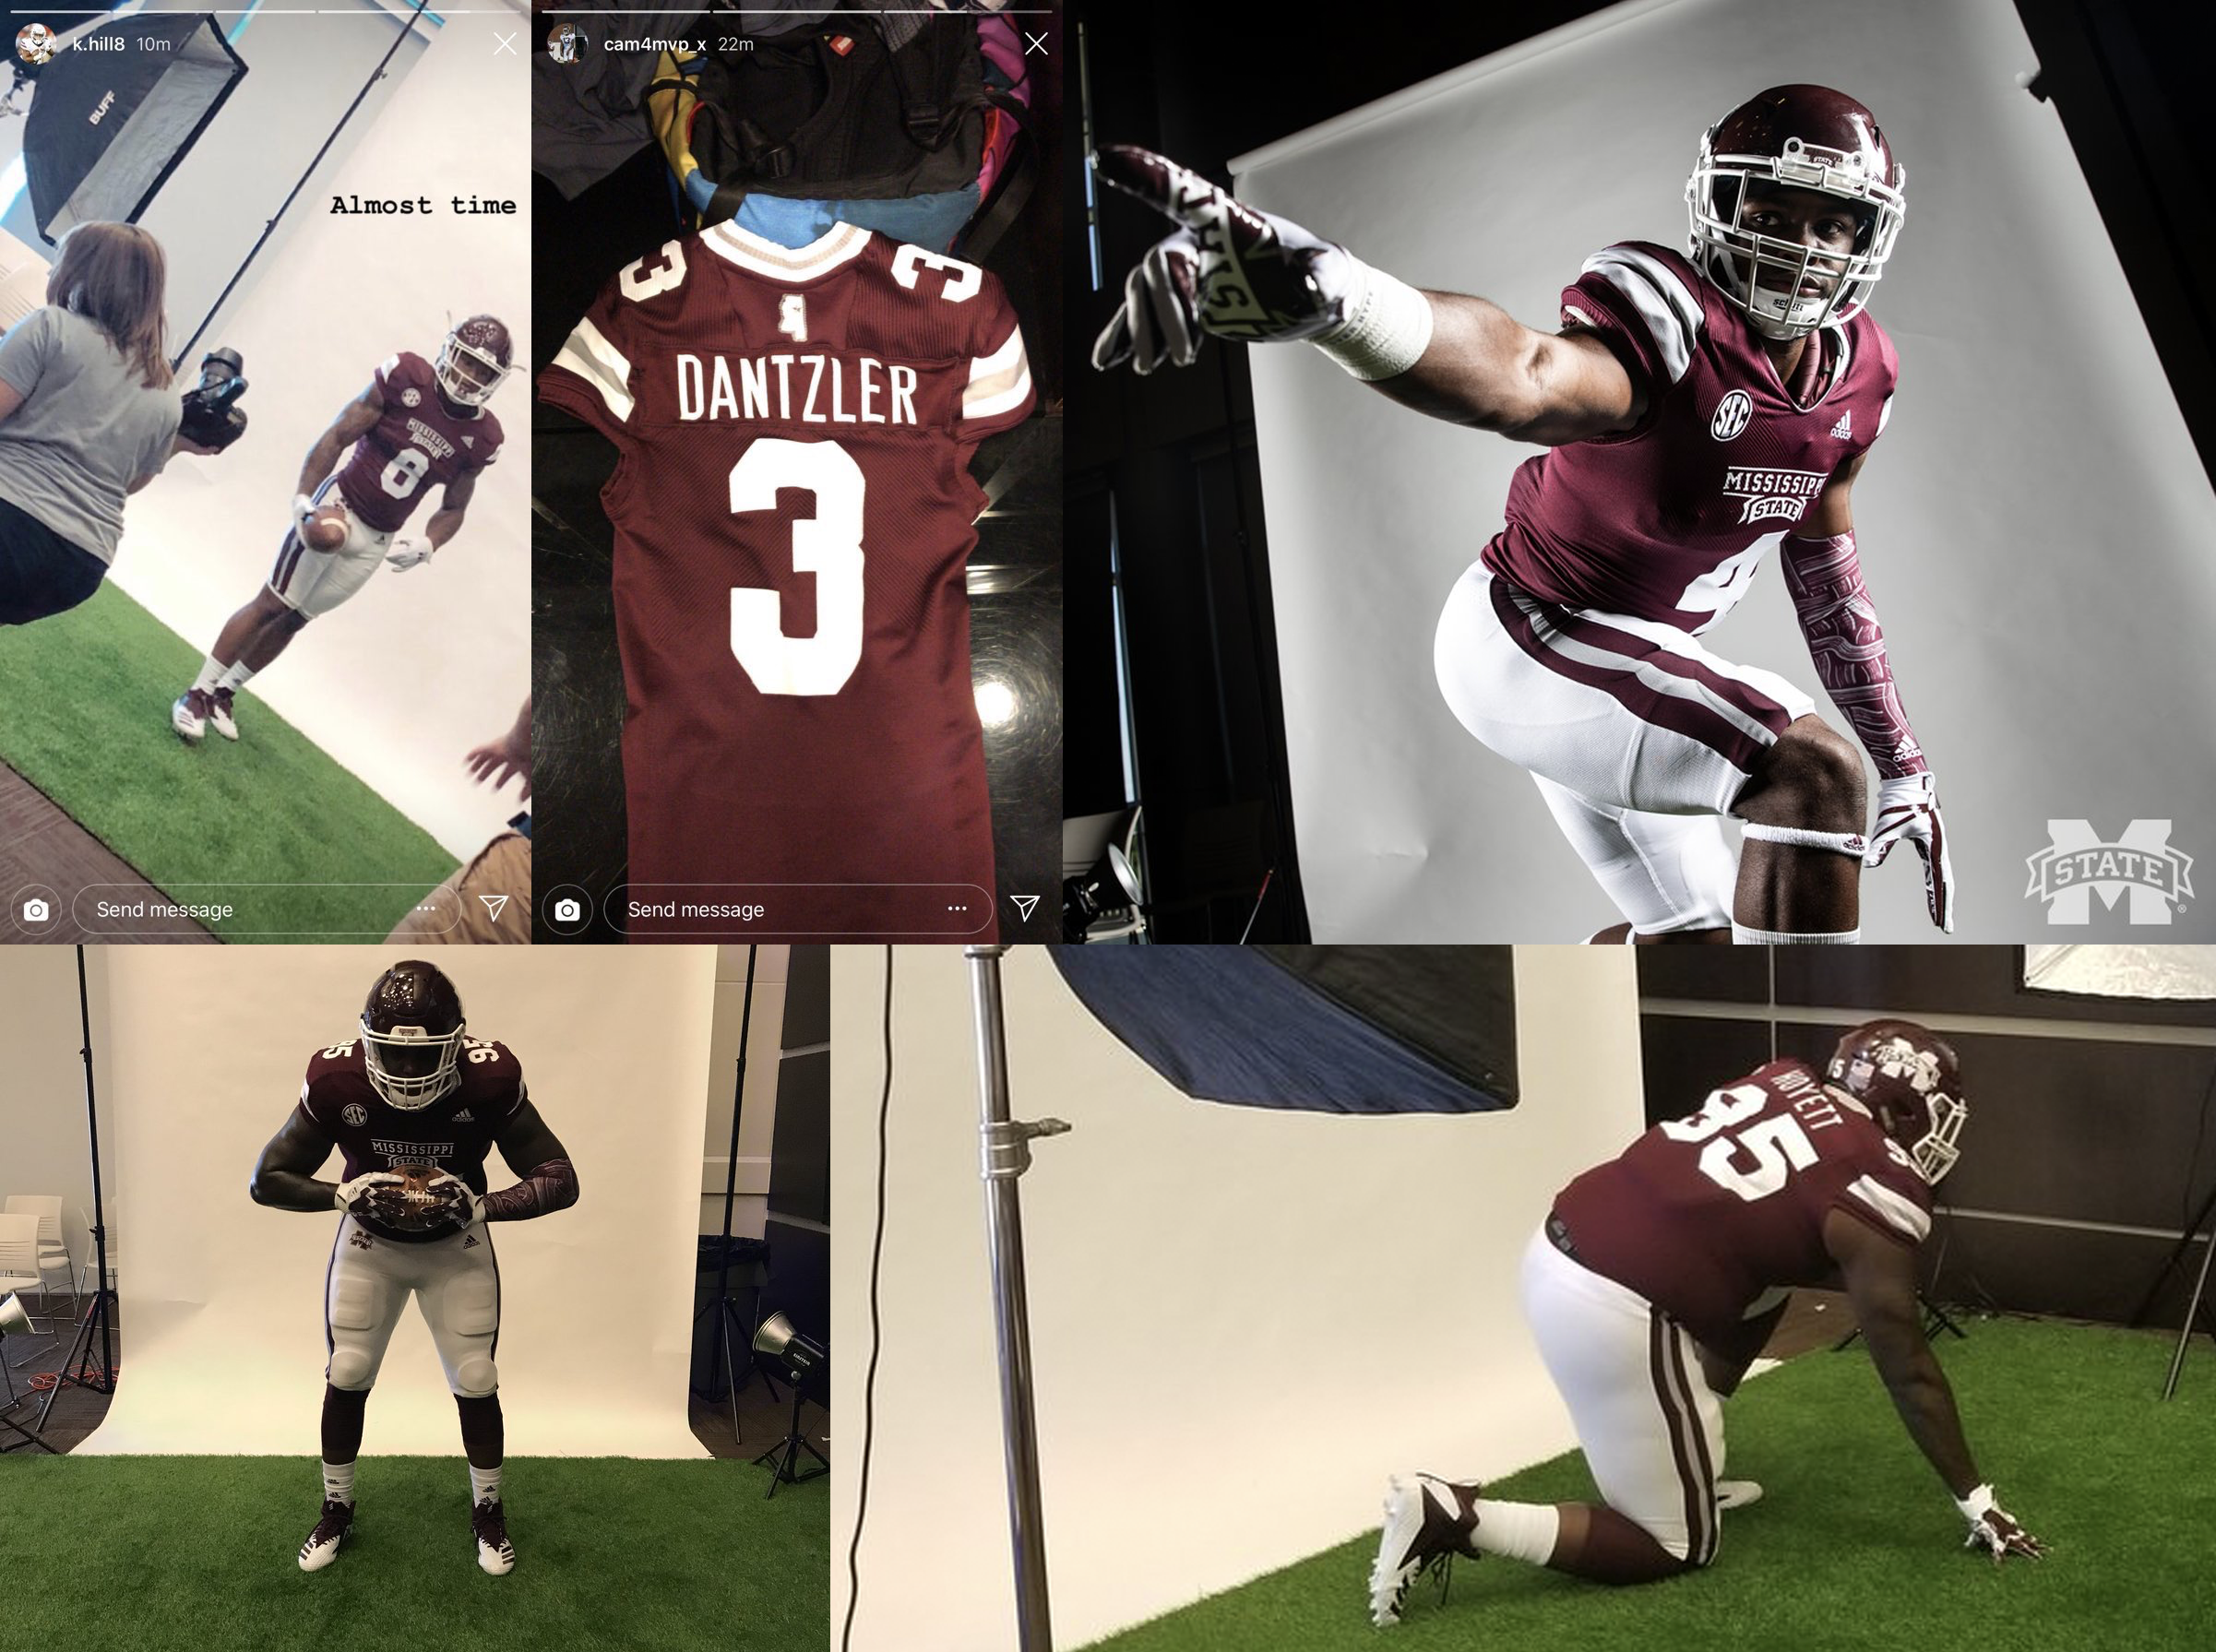 2018 Mississippi State Football Uniforms Season Preview - Hail State ... 31e24eb7d